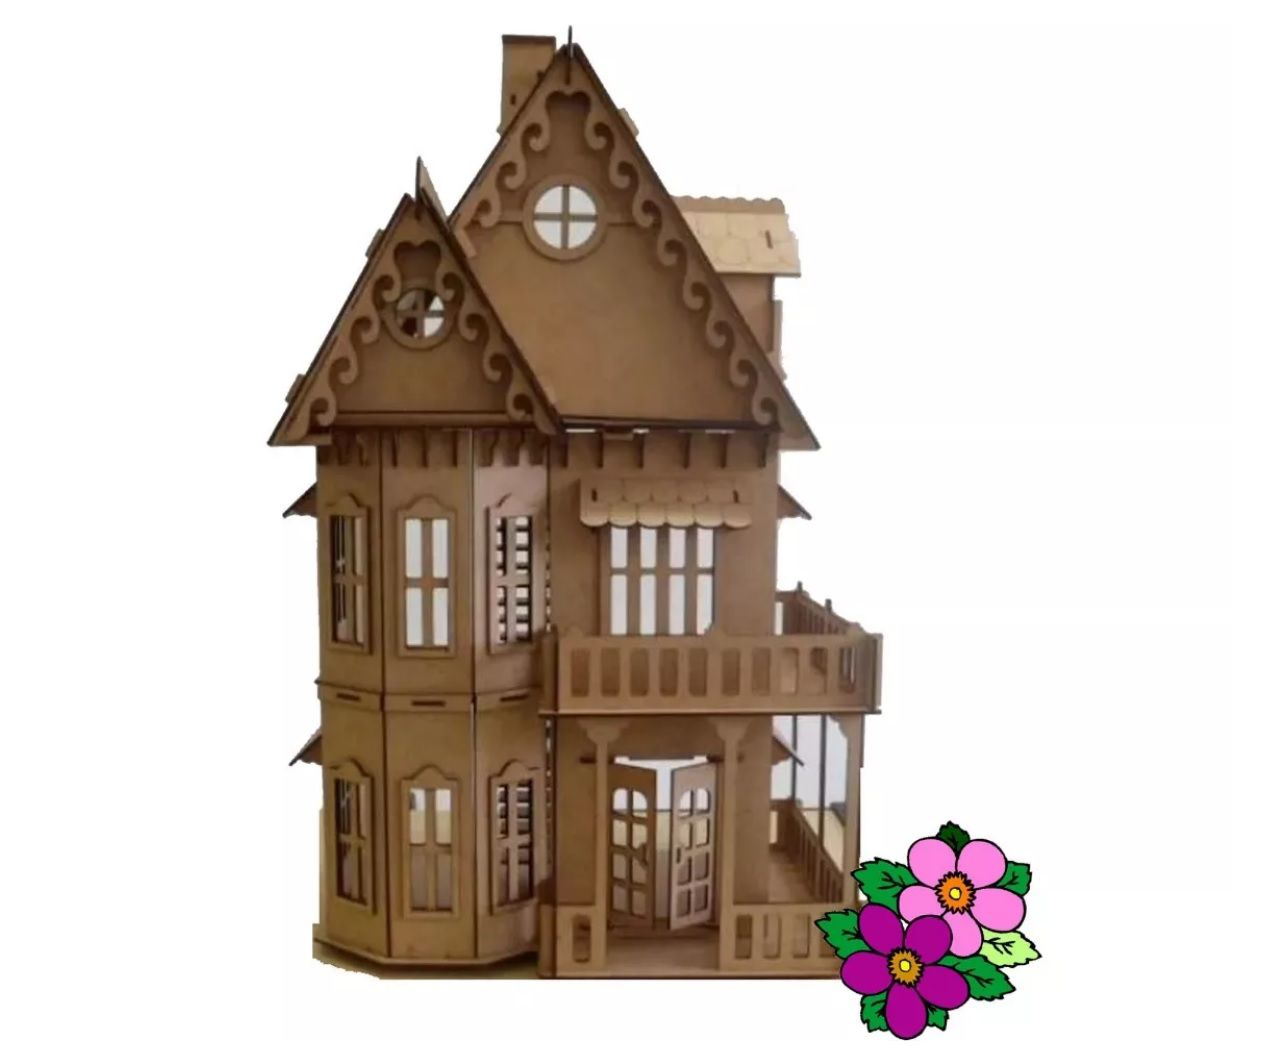 Casa em Mdf  para Bonecas Polly, Barbie Pocket  ou Similares Modelo C6